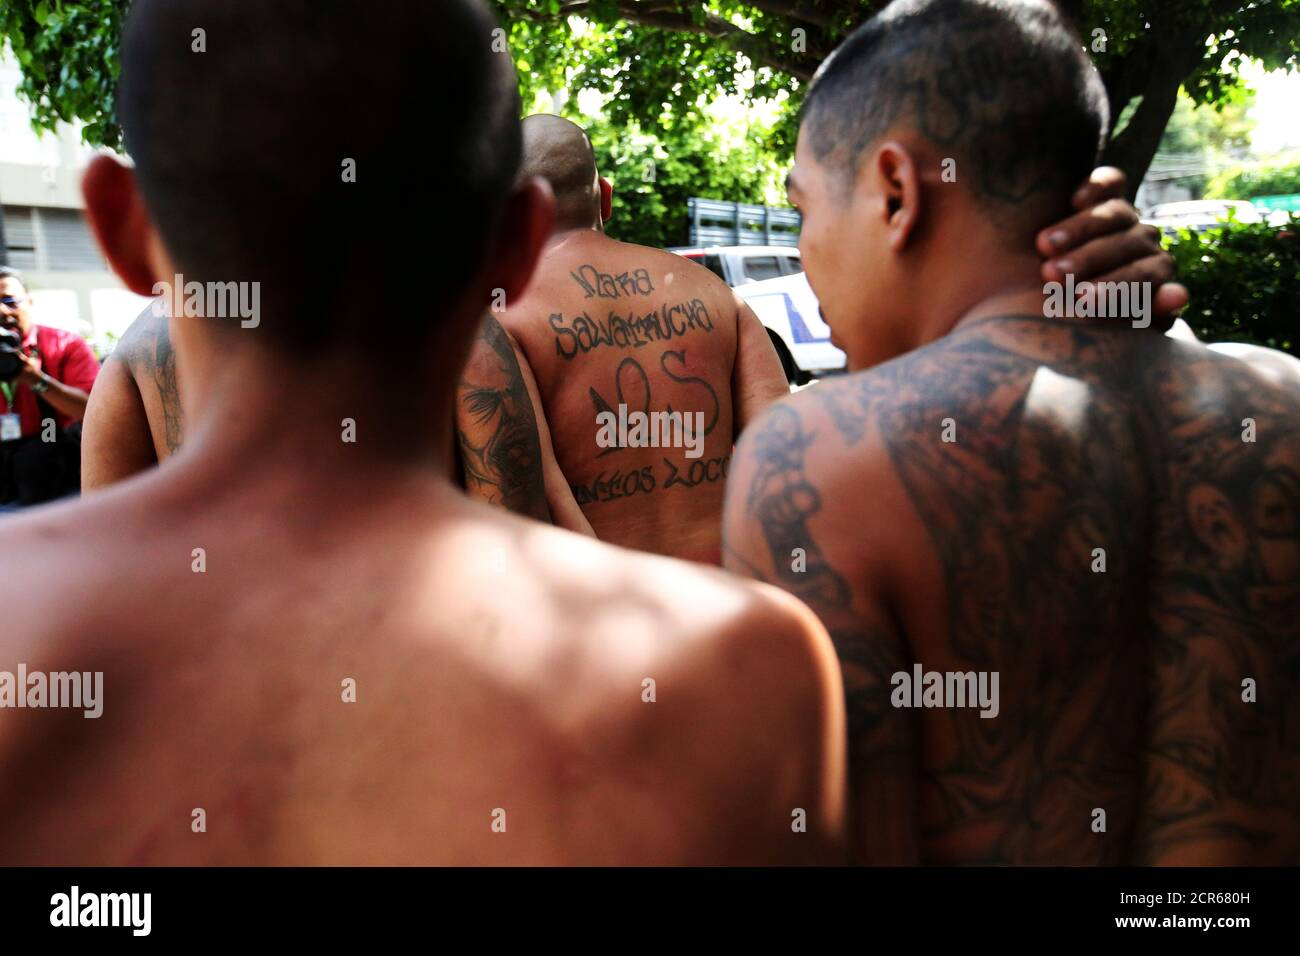 Members of the Mara Salvatrucha gang (MS-13) are escorted after being presented to the media after being detained by the police during a private party in San Salvador, El Salvador, August 10, 2017. REUTERS/Jose Cabezas     TPX IMAGES OF THE DAY Stock Photo